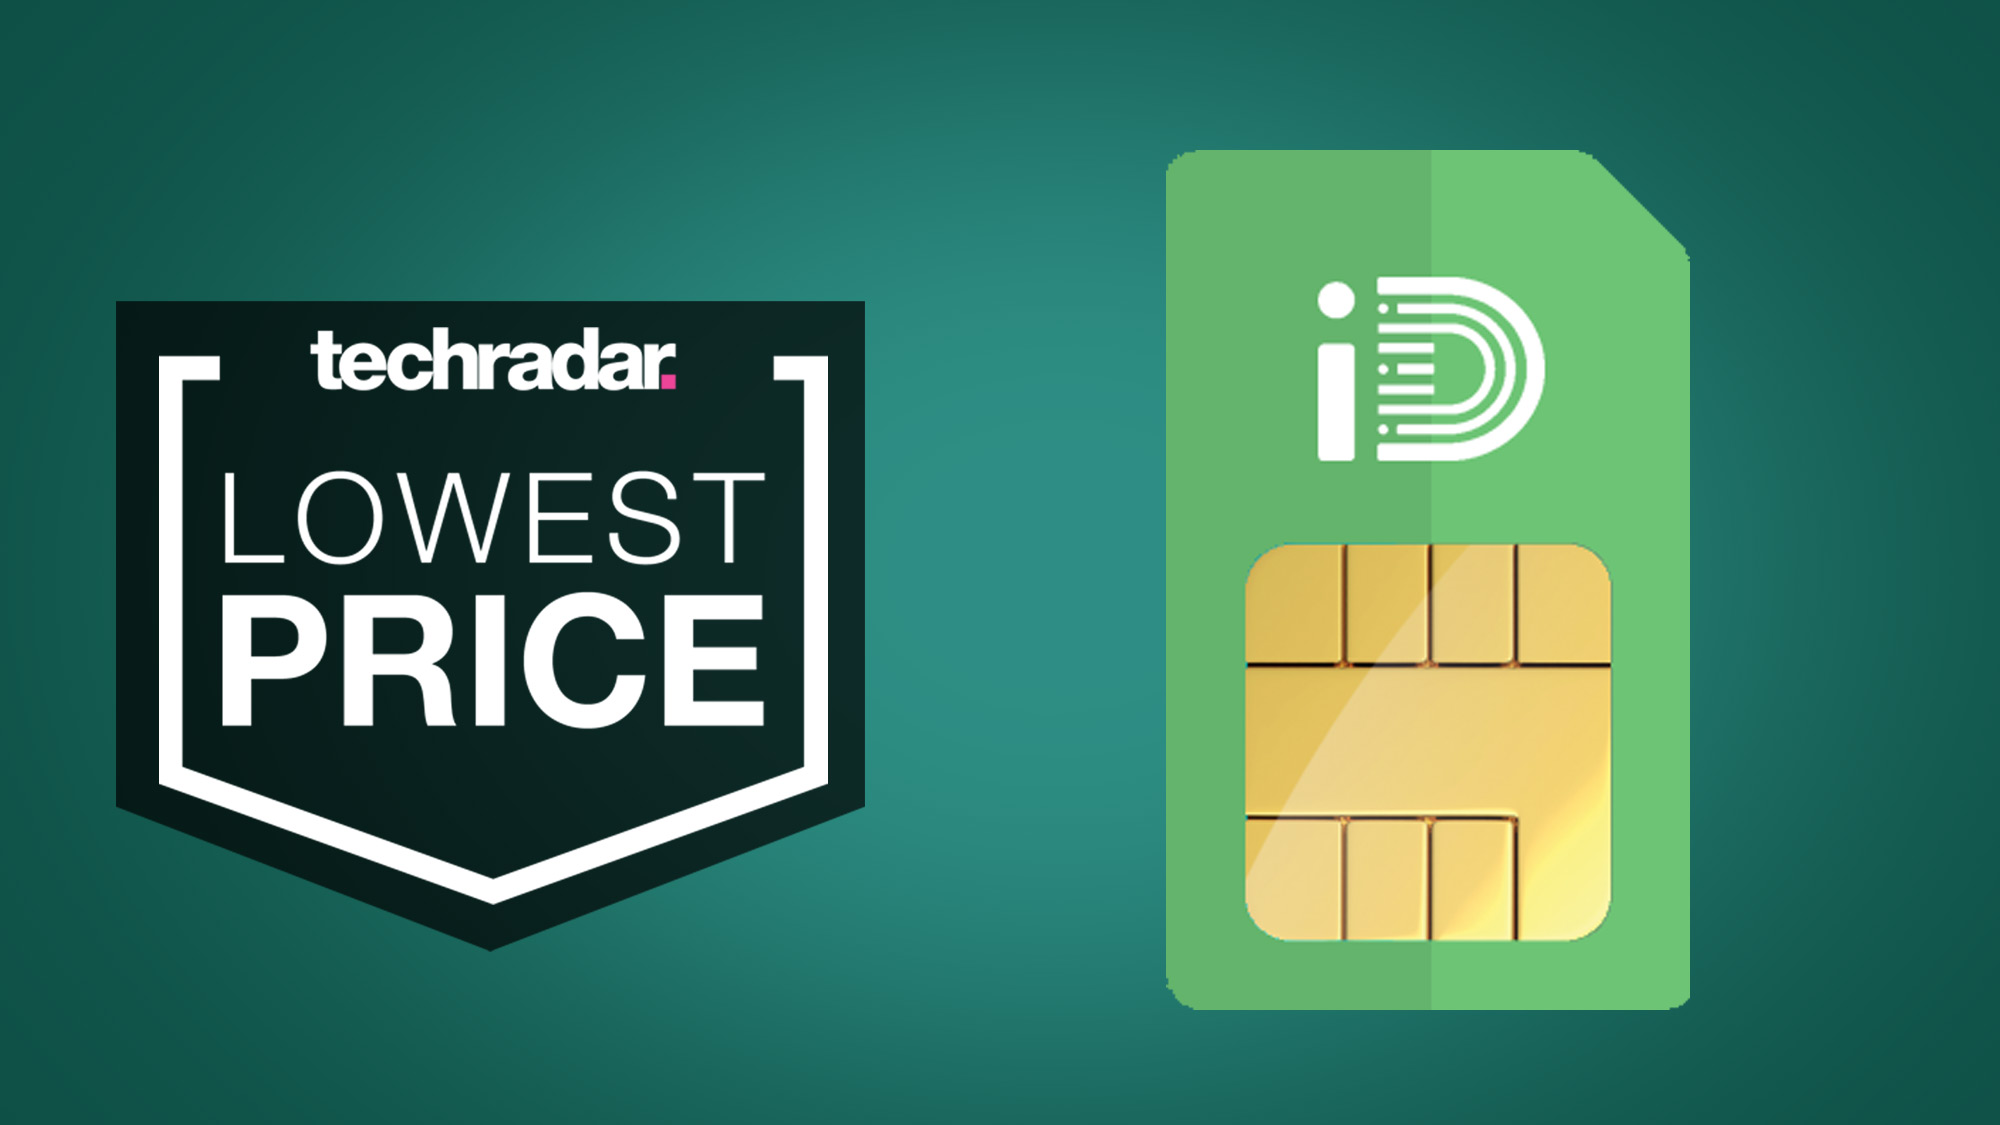 iD Mobile just set a new bar for cheap SIM-only deals with a £3.99 a month price tag